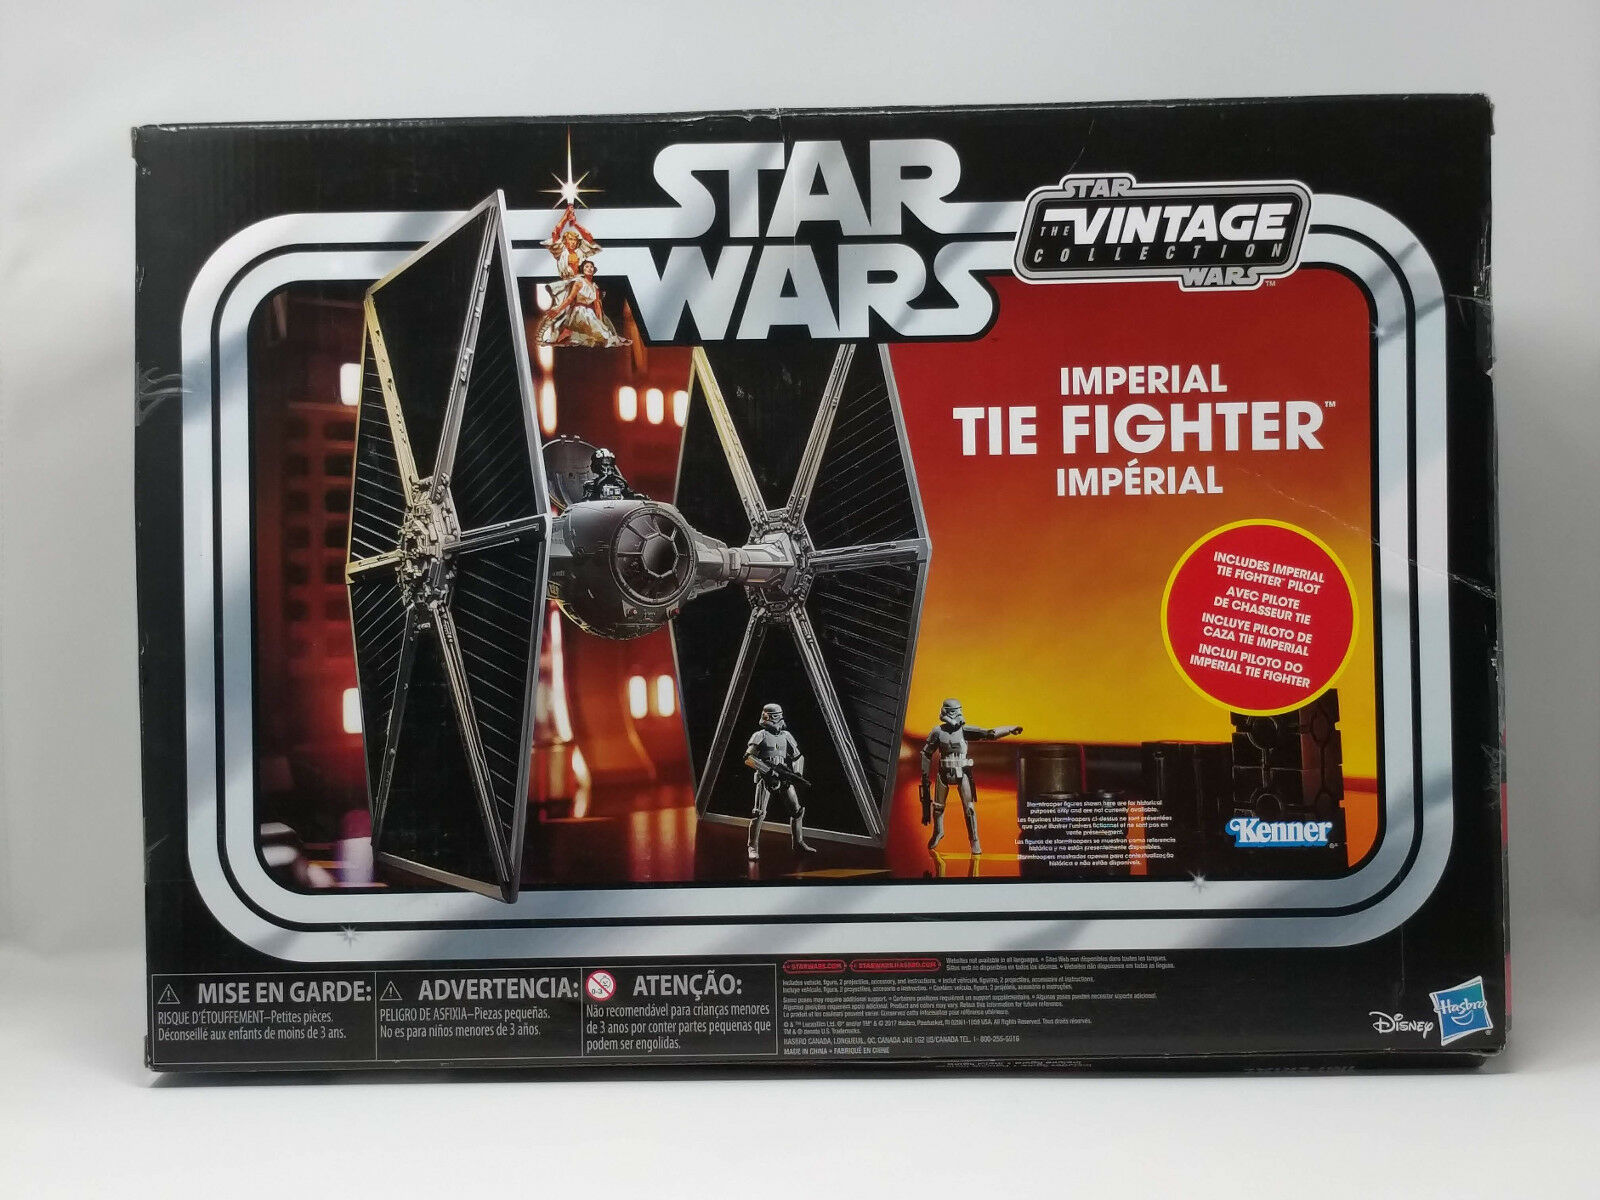 Star Wars Vintage Collection Imperial Tie Fighter and Pilot Exclusive Retro